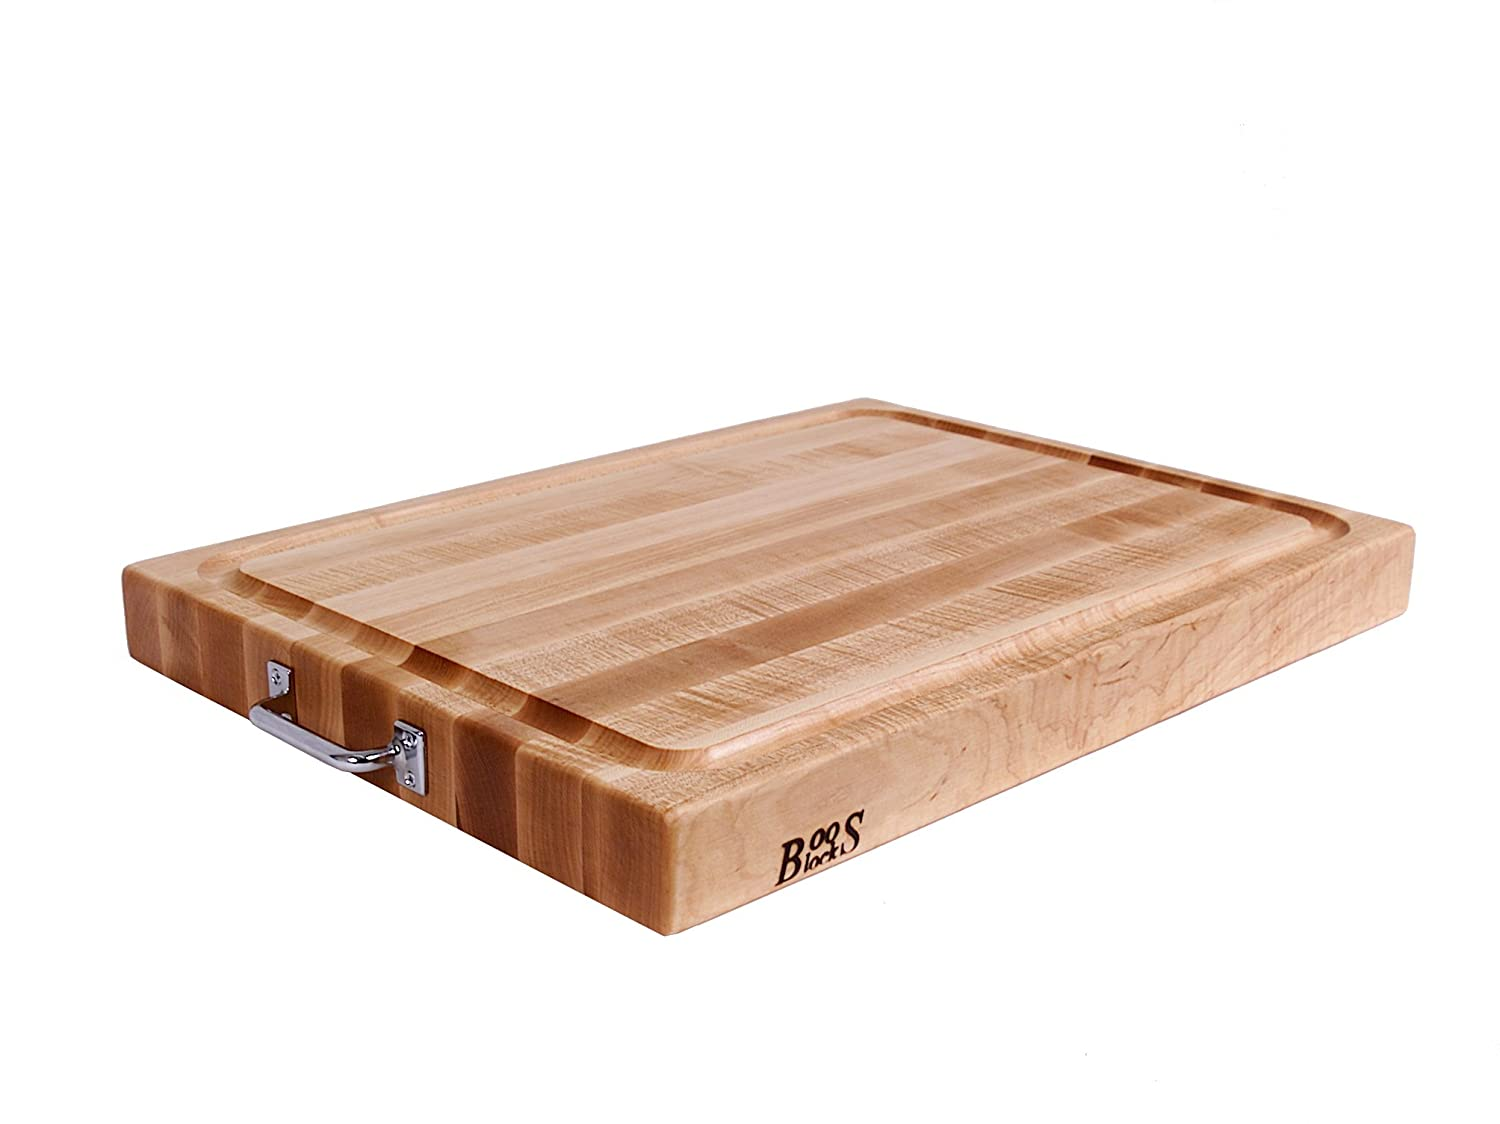 Reversible Cutting Board with Chrome Handles